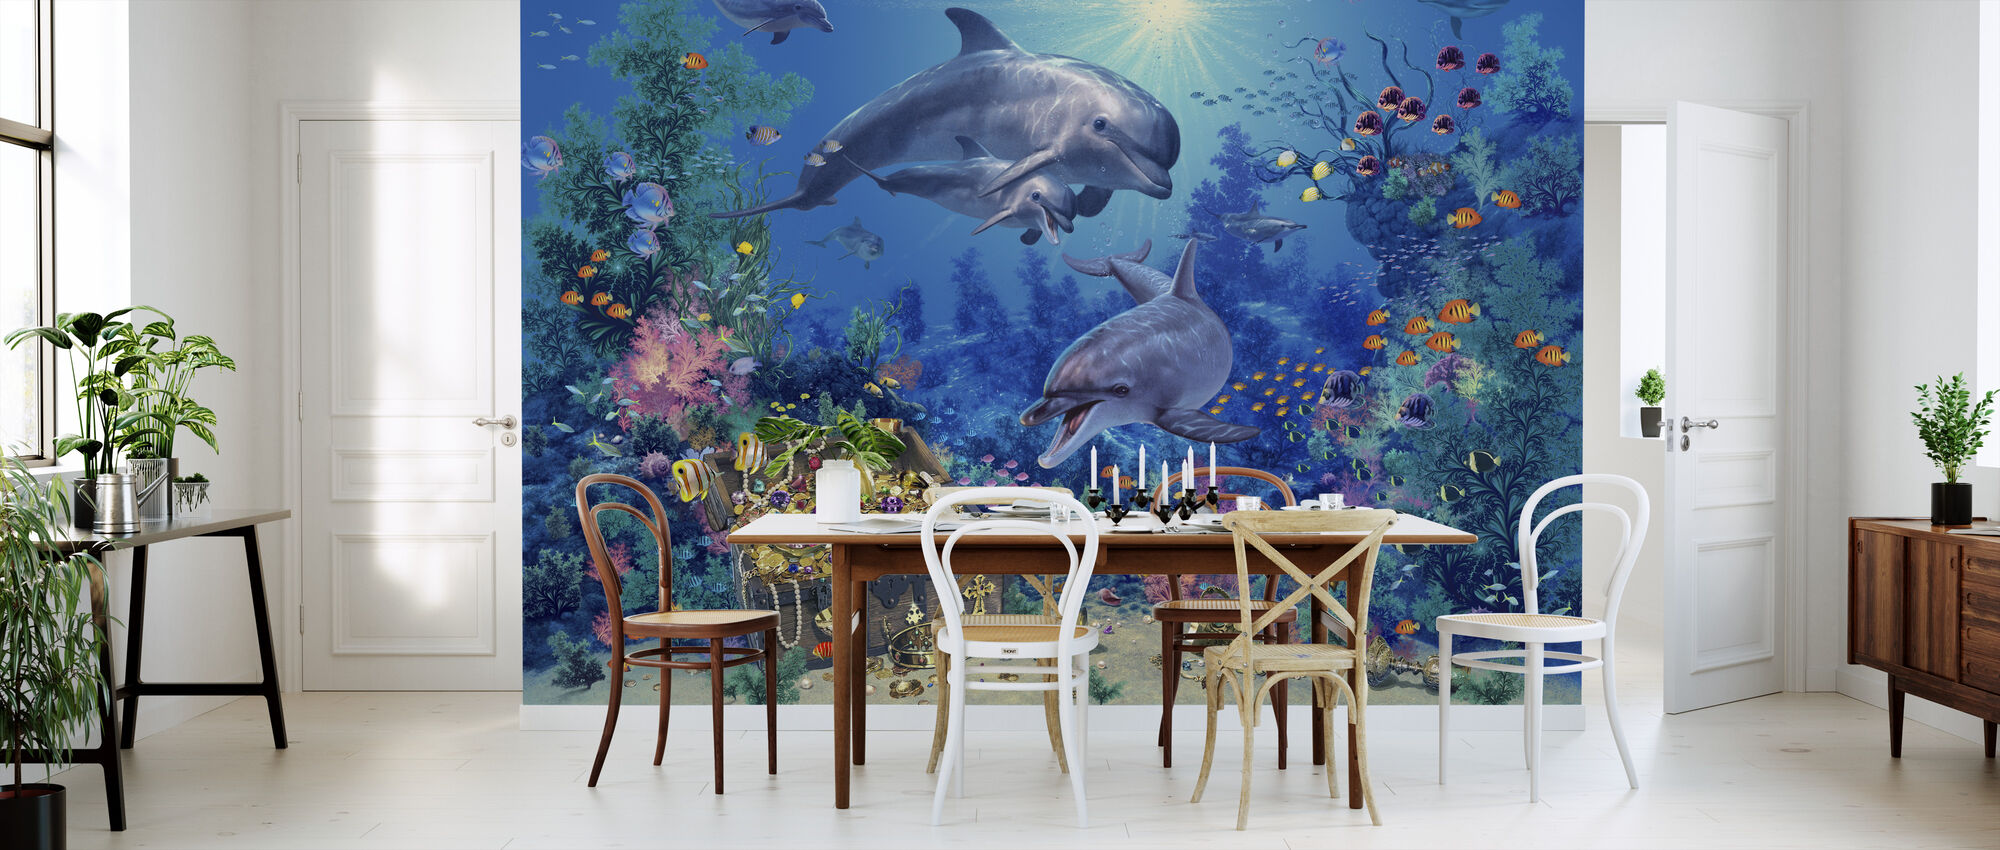 Dolphin Family - Wallpaper - Kitchen